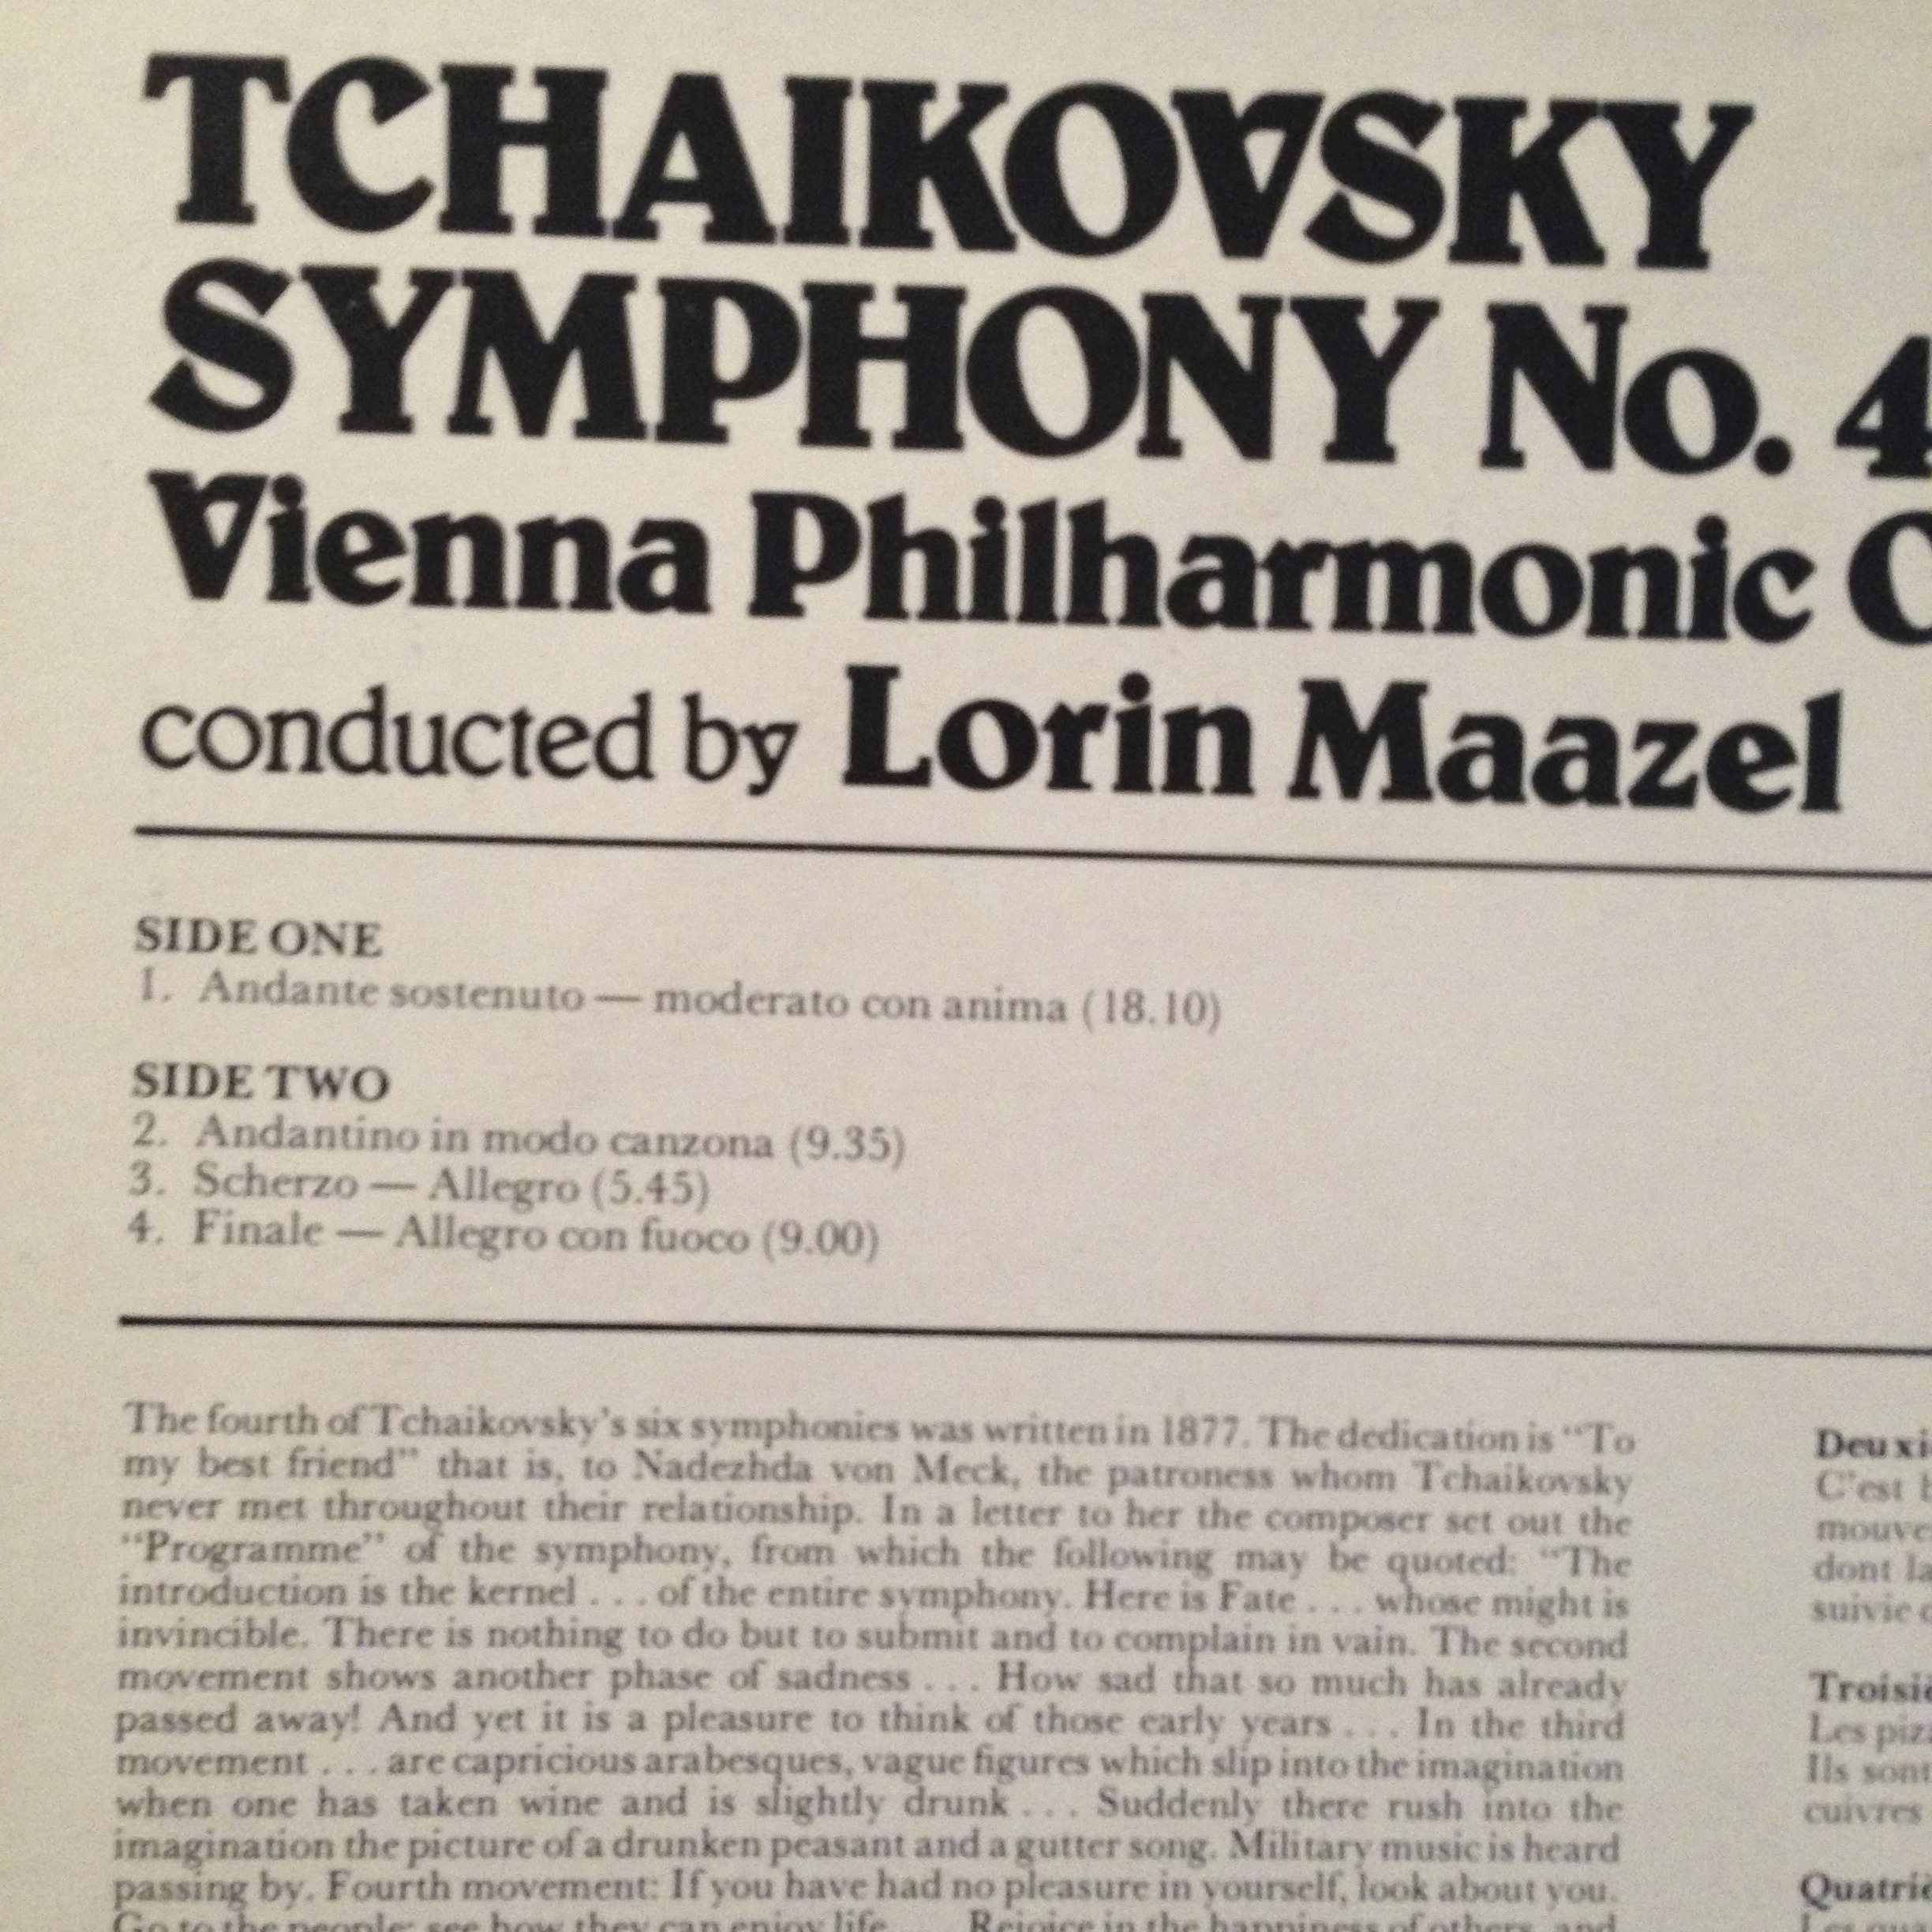 tchaikovskys symphony in f minor essay And orchestra op4 (1852) concerto movement in f sharp minor 'op1' (1855-6)  piano  piano concerto, tchaikovsky's piano concerto no1 in b flat  bortnyansky's slim  far superior from every point of view is rimsky-korsakov's  essay.